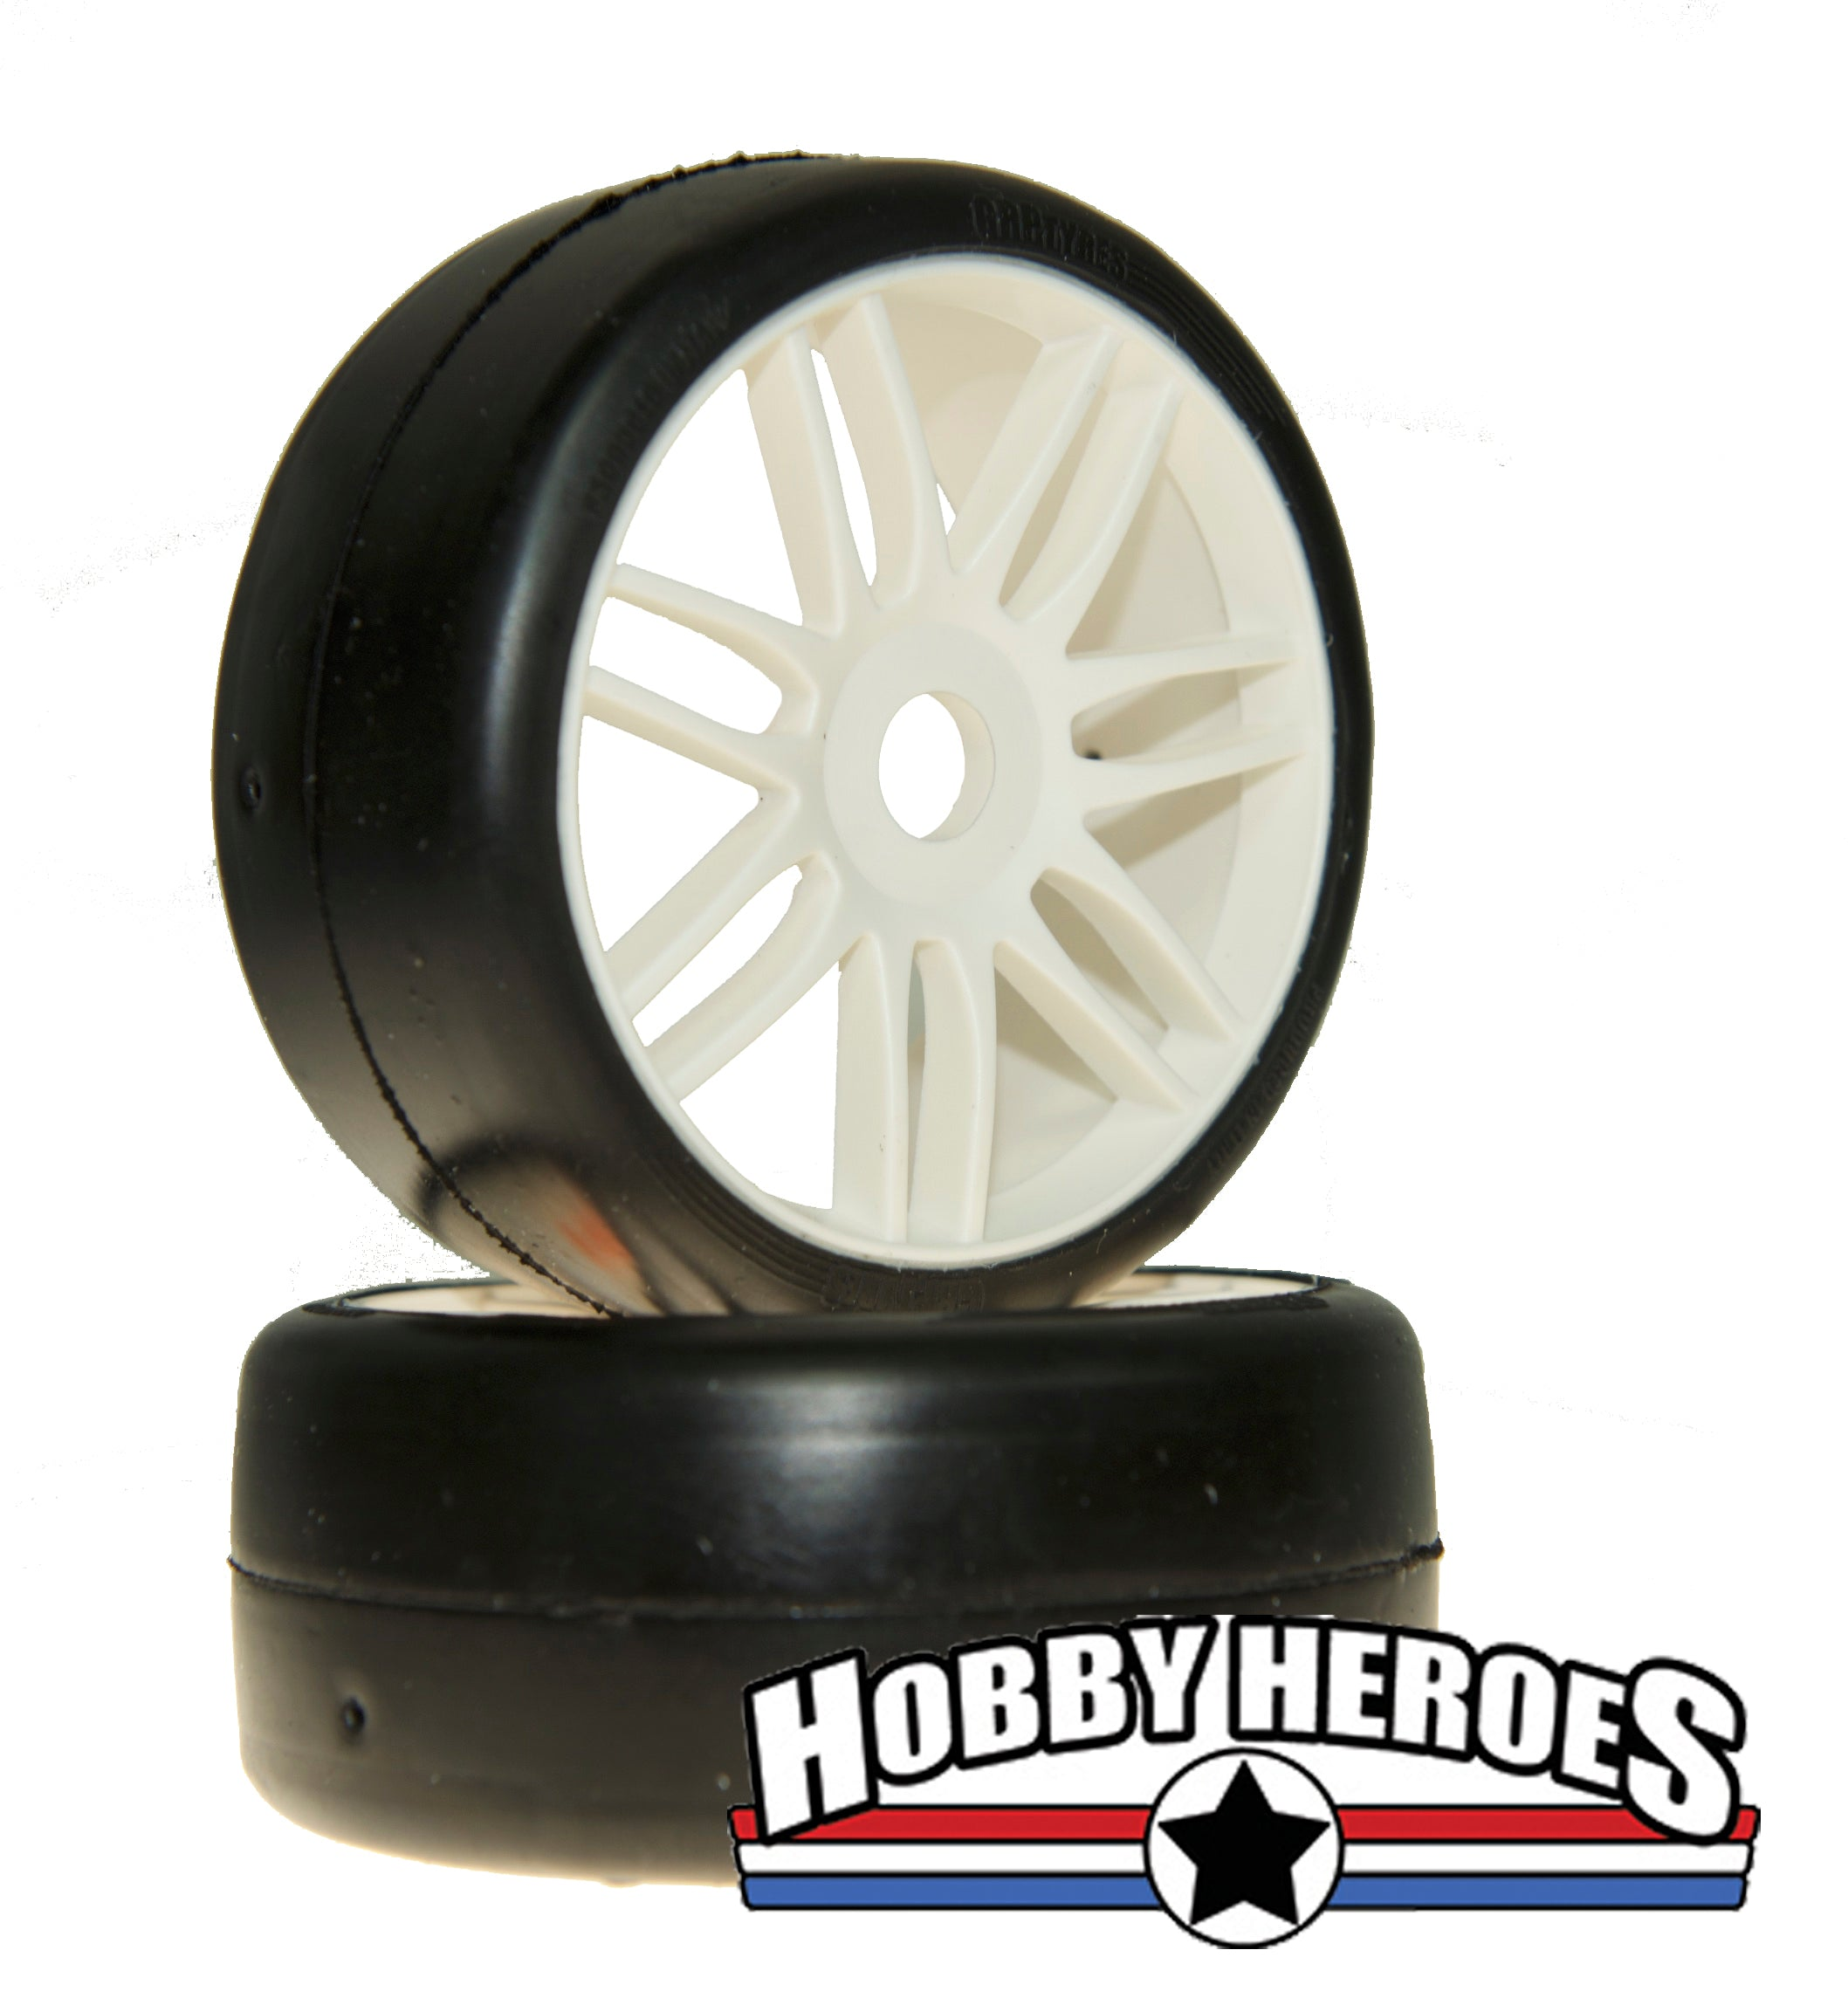 GRP Tyres 1:8 GT Slick S5 Medium White Spoked Belted On-Road Rubber Tires GRPGTH02-S5